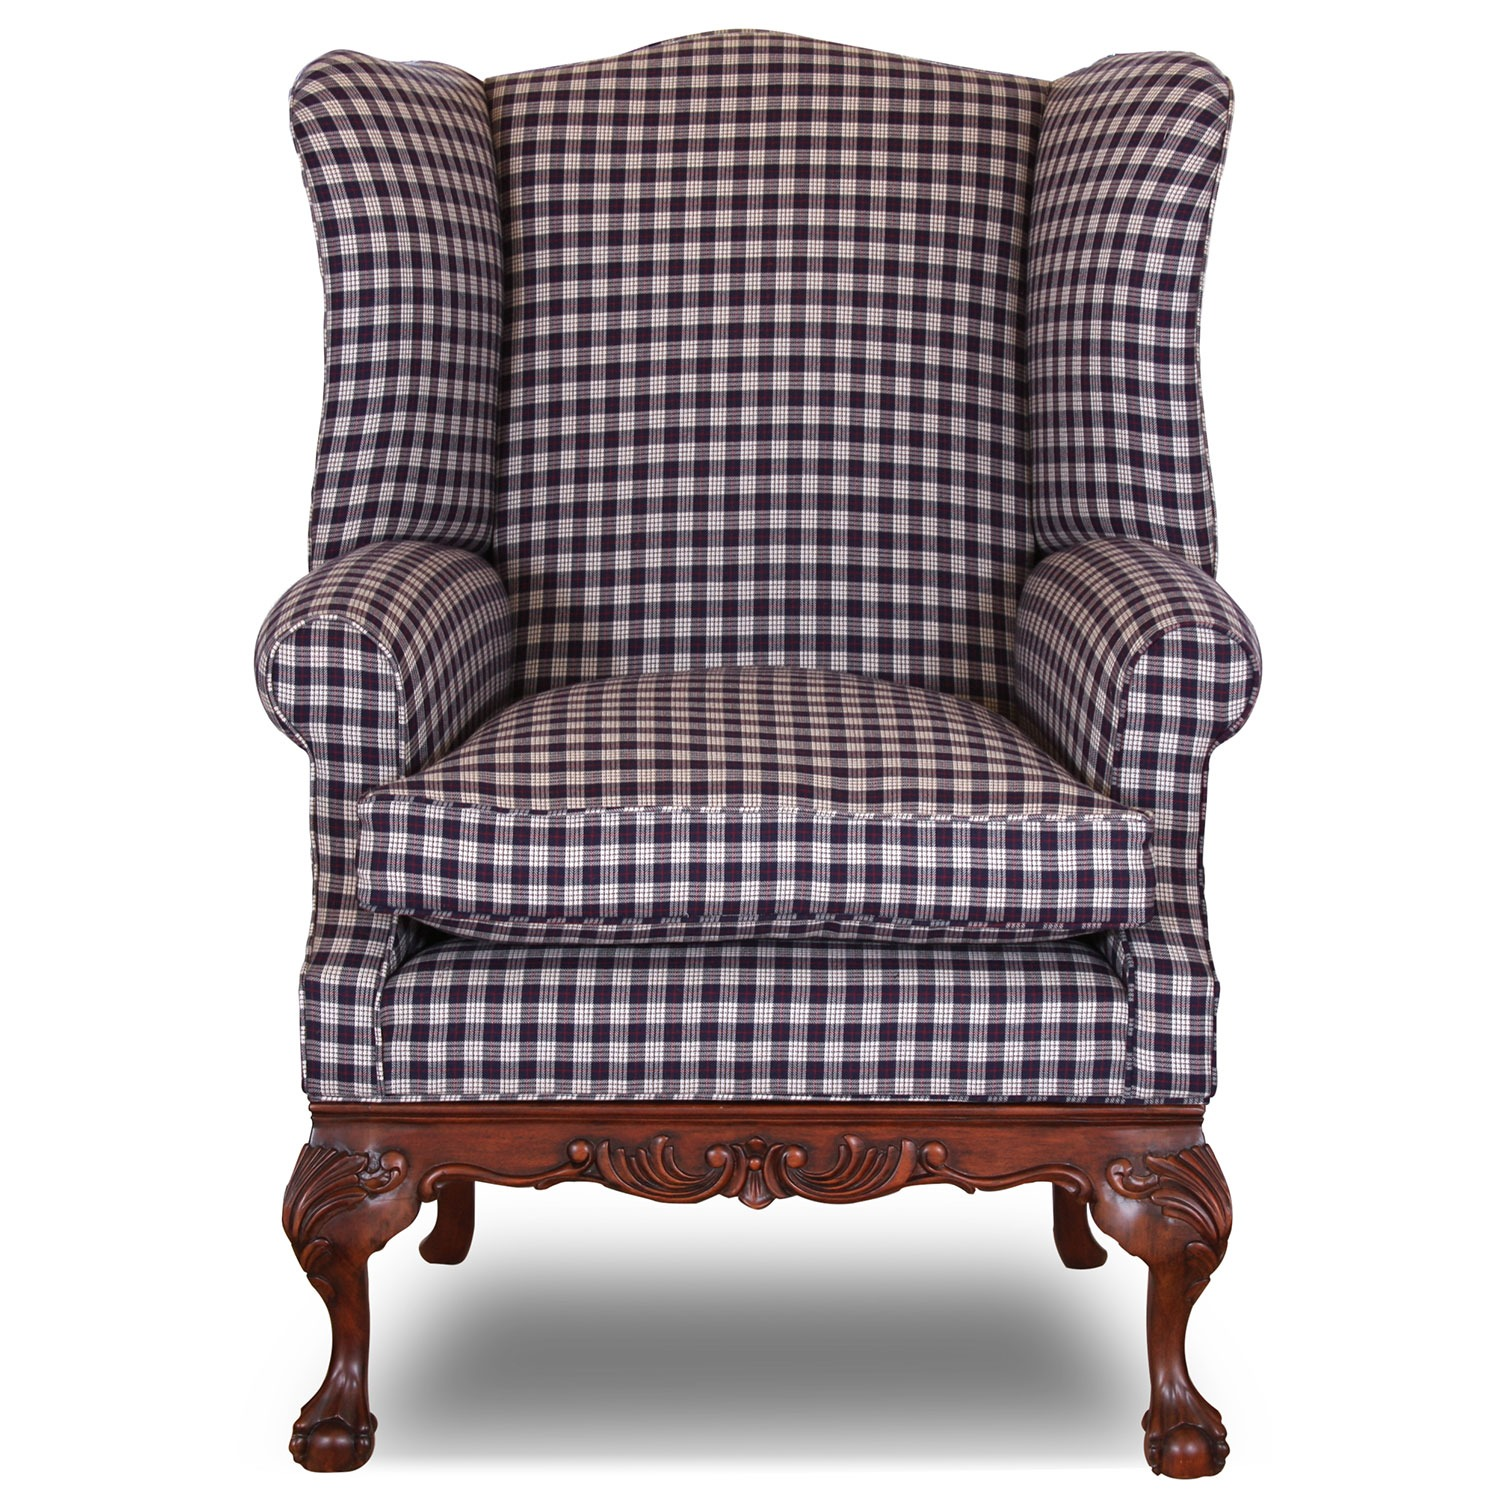 Sonning wing chair in Viyella Scottish Wool